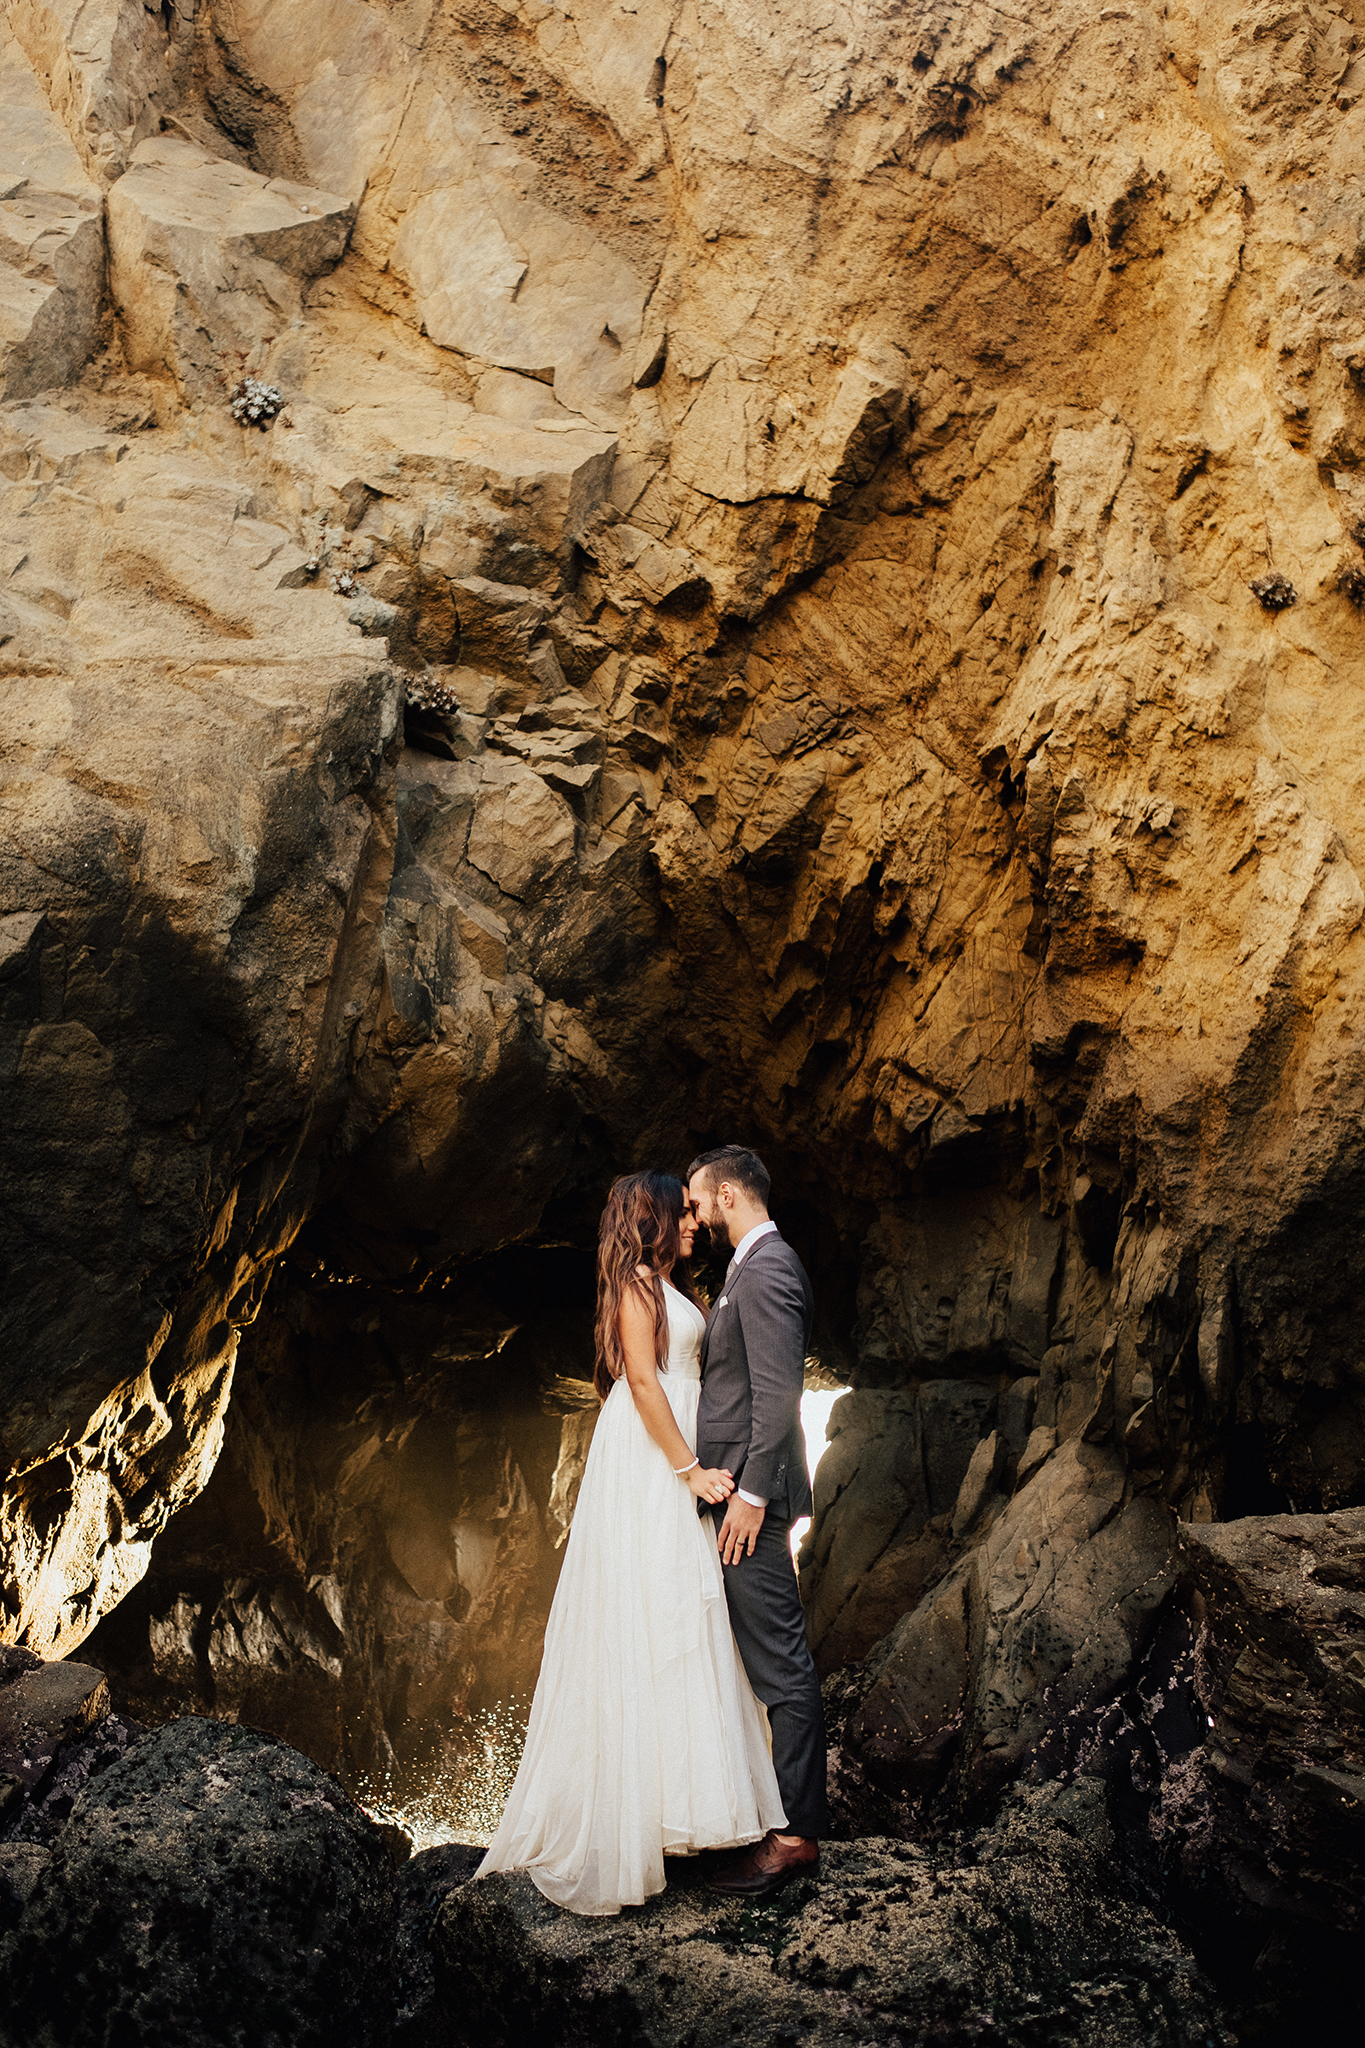 Big-Sur-National-Park-Elopement-Intimate-Wedding-Photographer (63).jpg